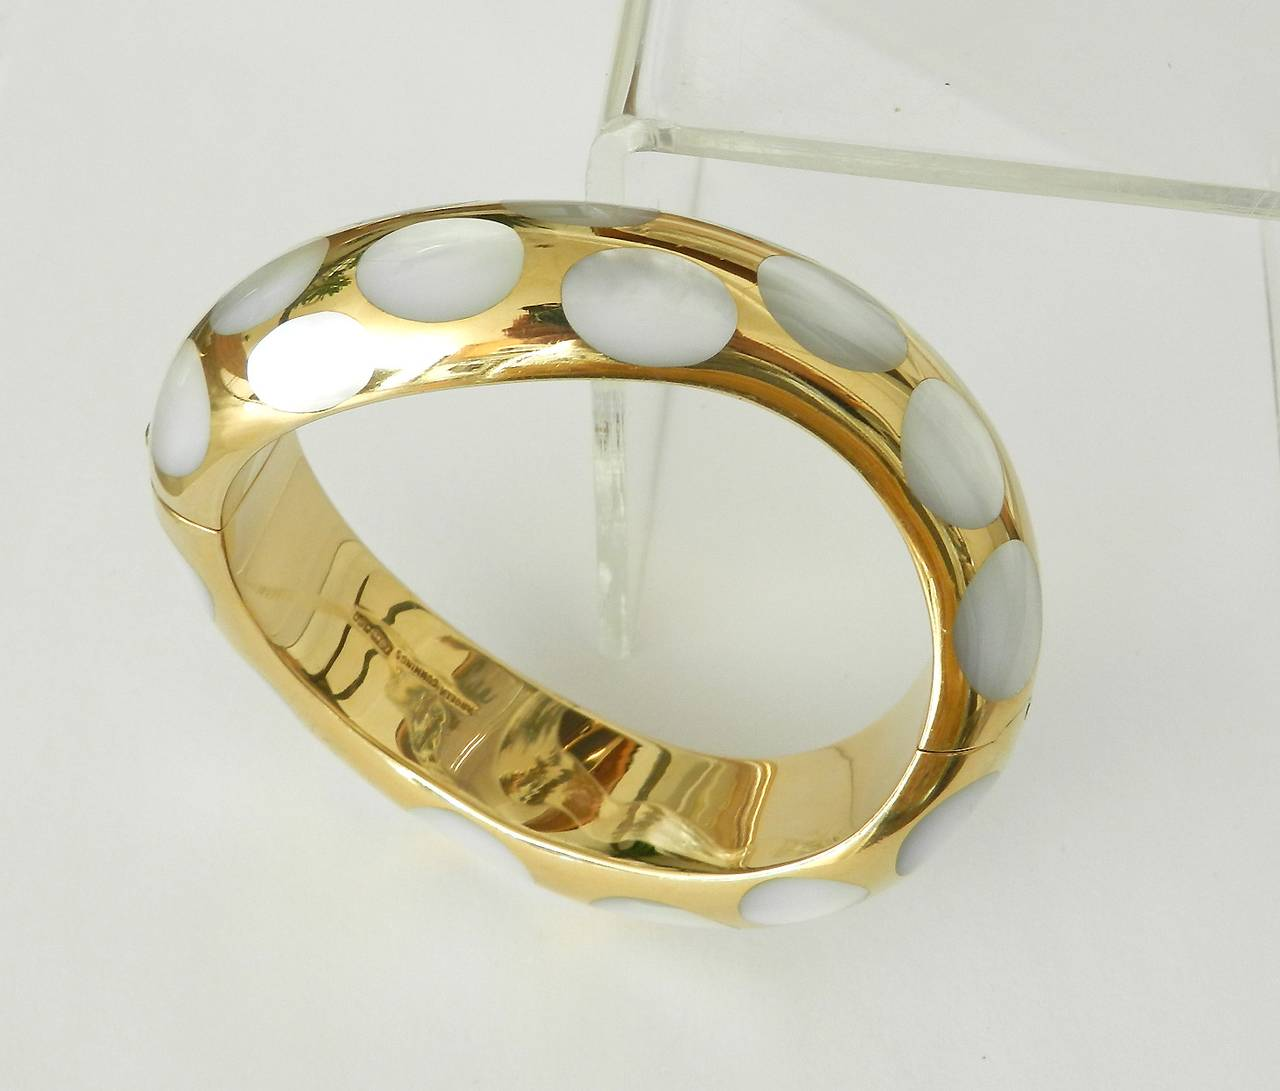 18k Gold And Mother Of Pearl Bracelet 3